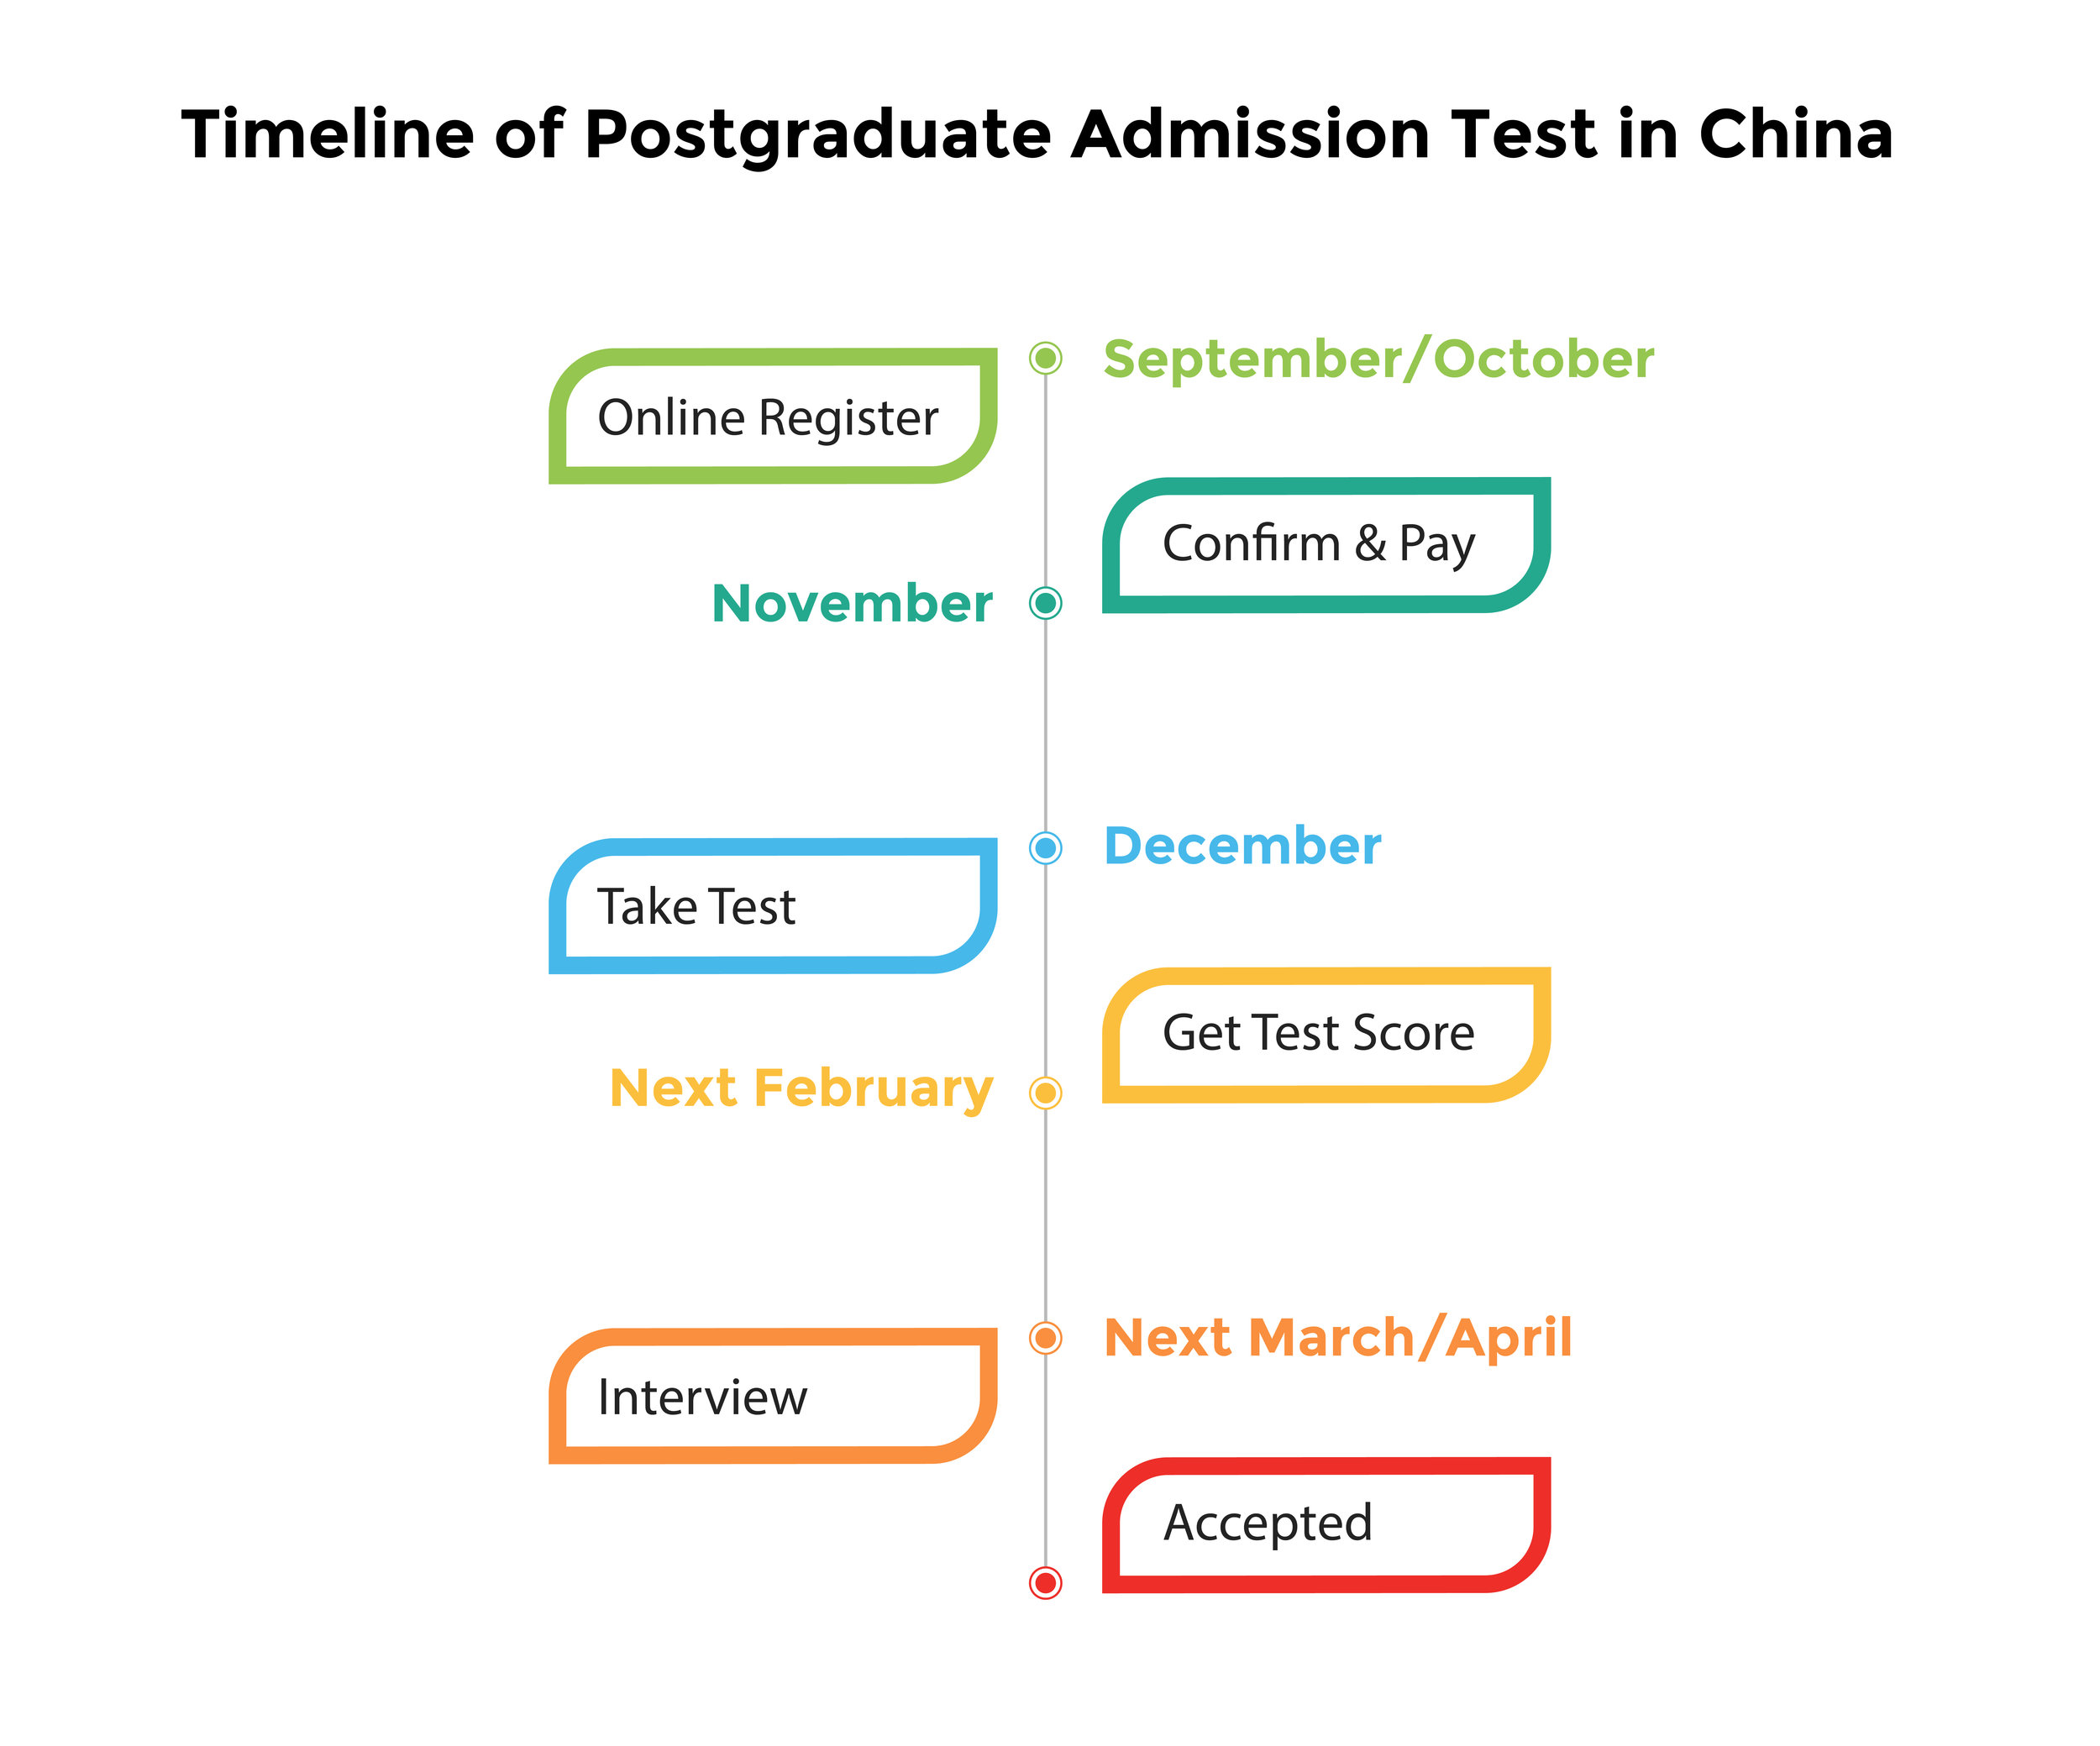 Timeline of Postgraduate Admission Test in China